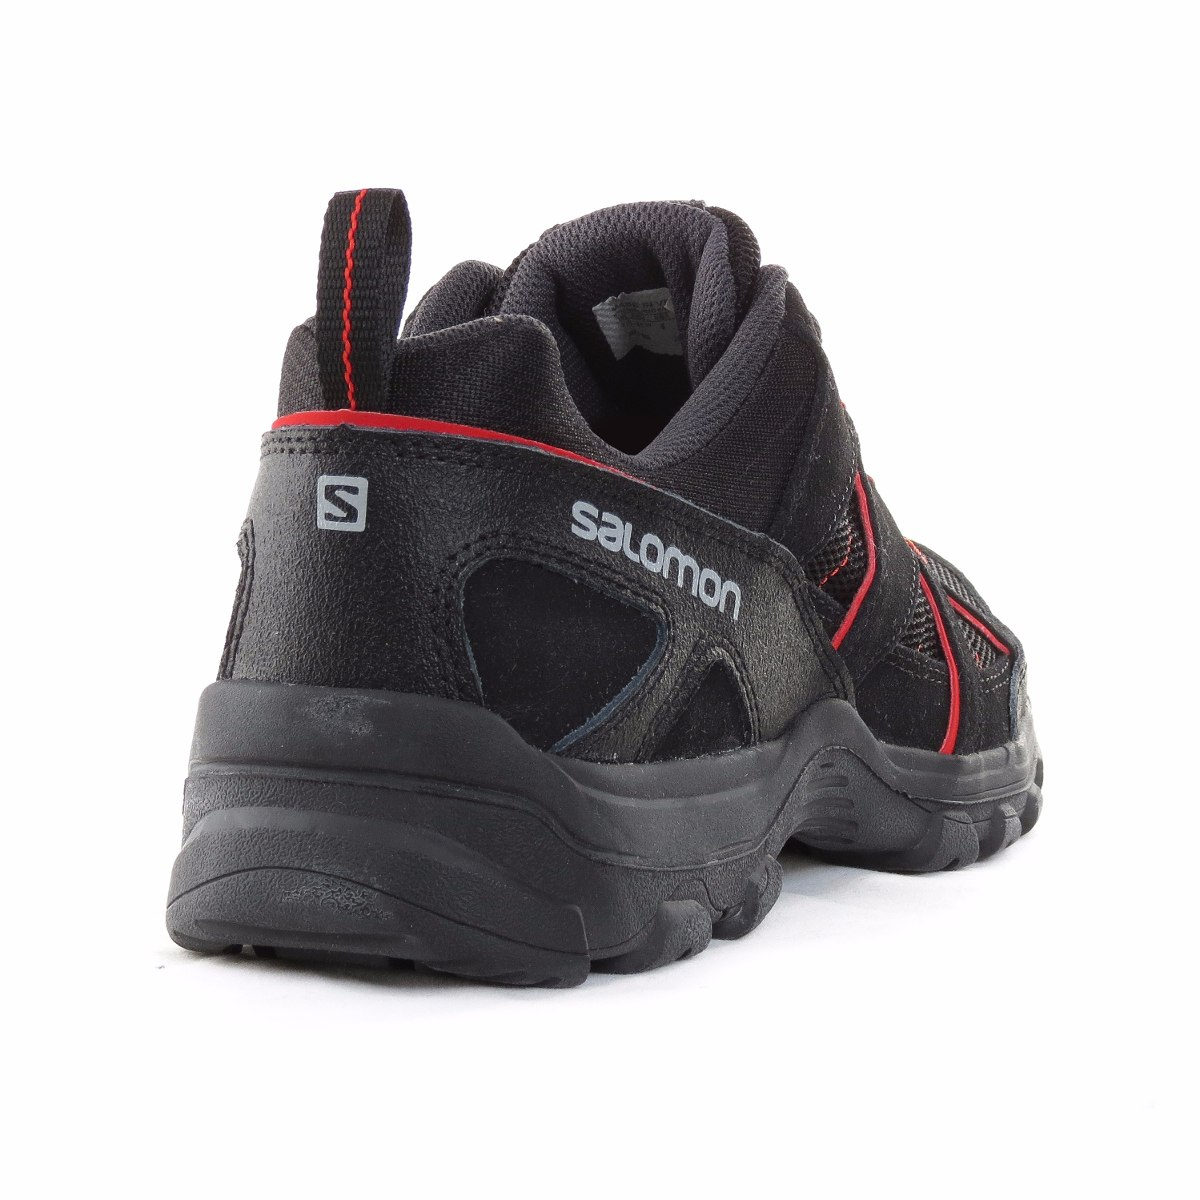 Zapatillas - Salomon Zapatillas de Running Salomon Cruise 2 M Trail